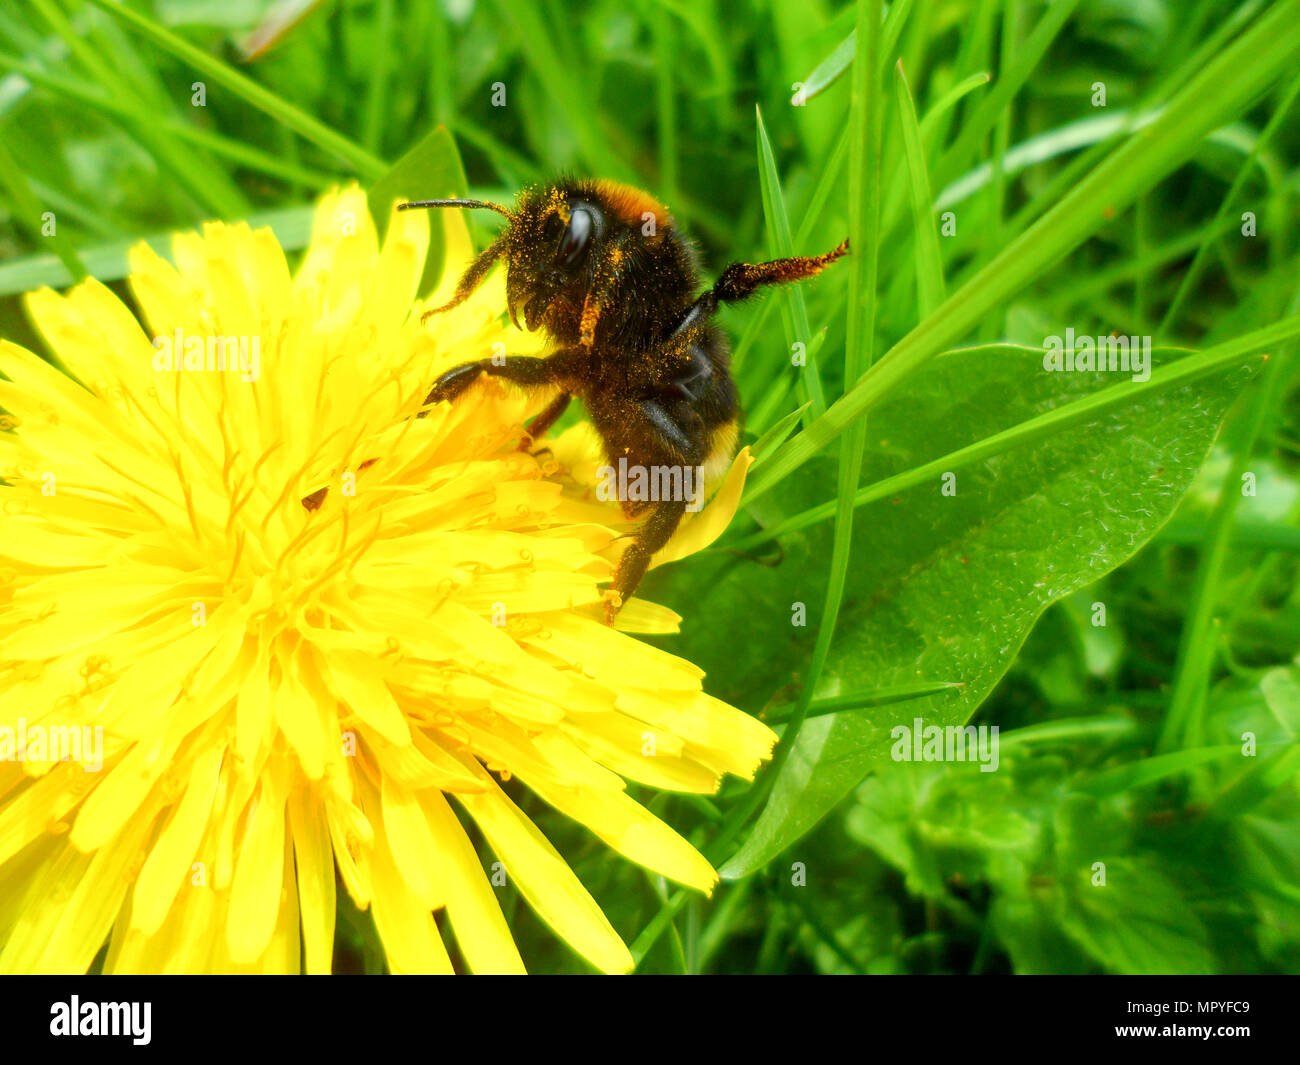 a-bumble-bee-collecting-pollen-from-a-fl